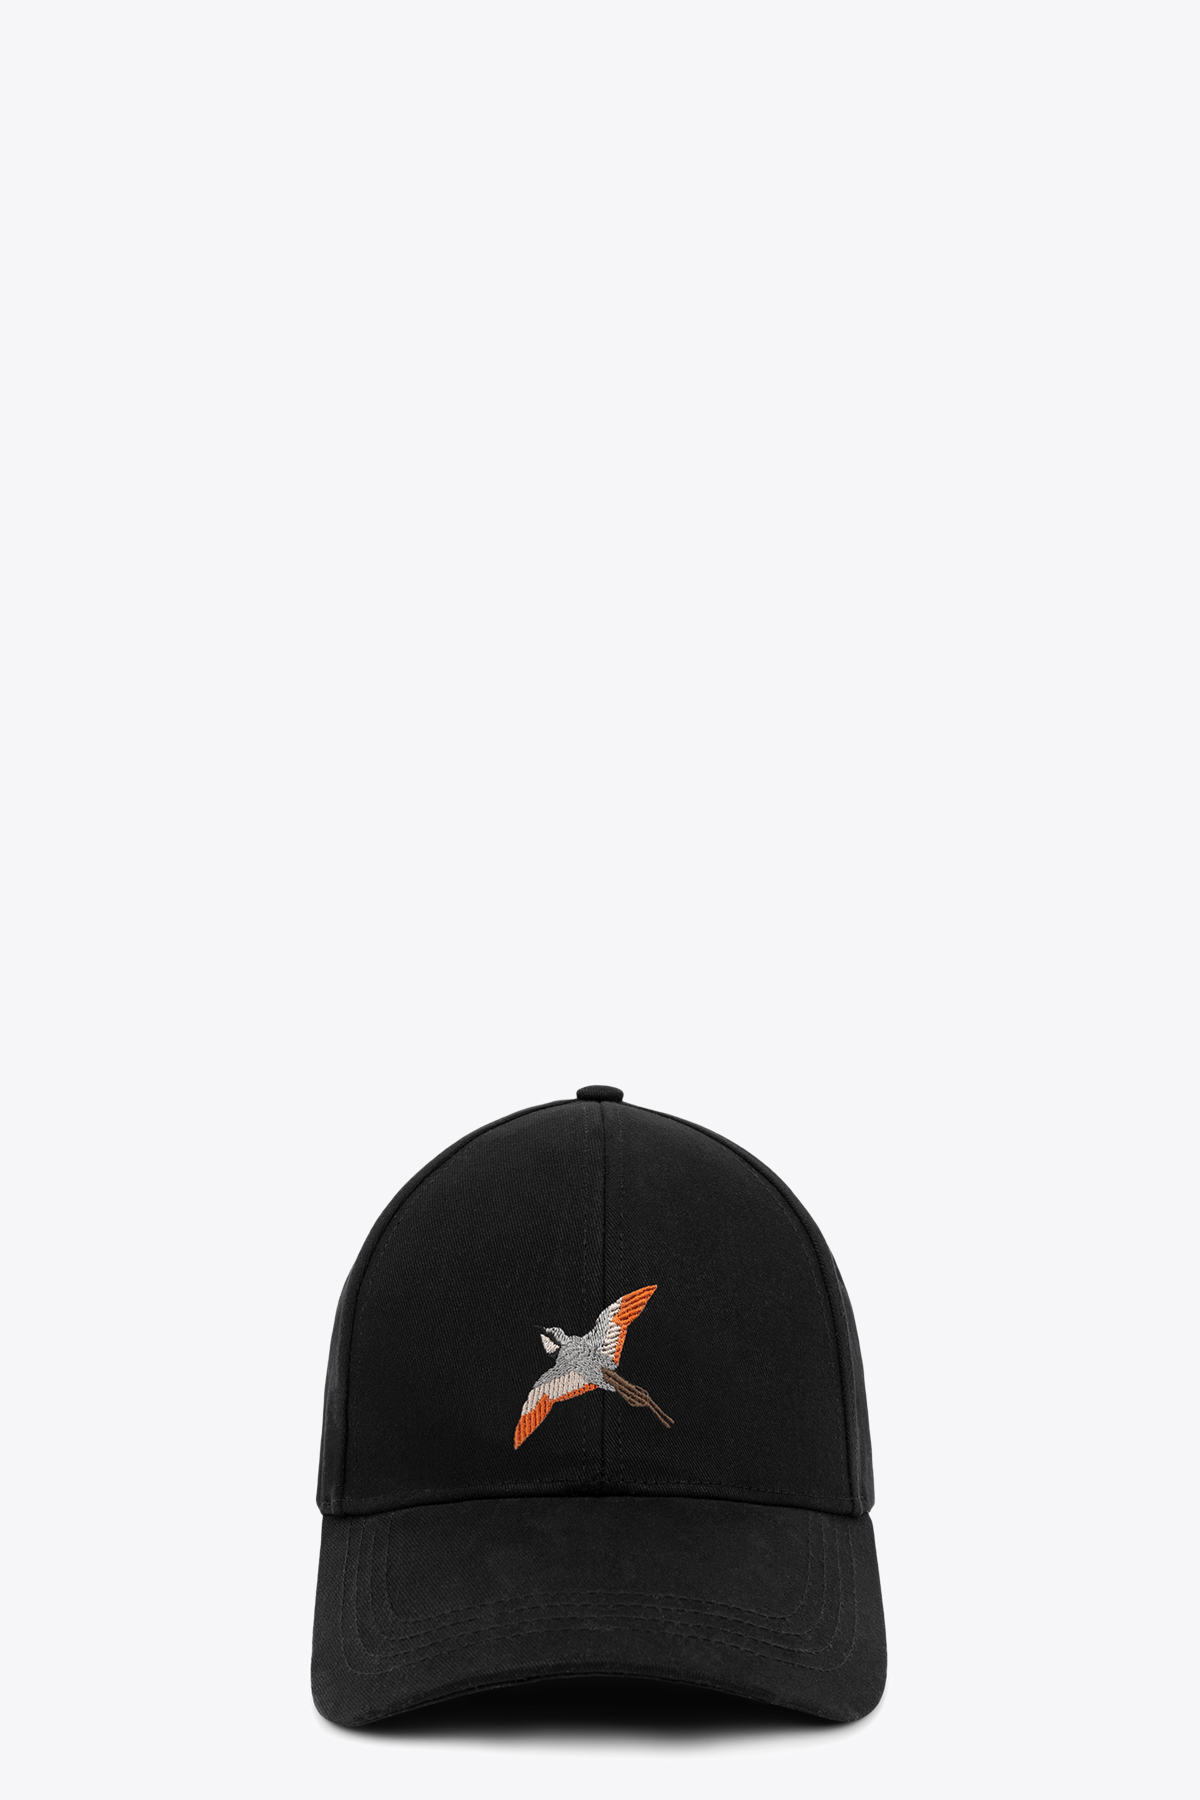 SINGLE TORI BIRD CAP AXEL ARIGATO | 26 | 15500 SINGLE TORI BIRD CAPBLACK